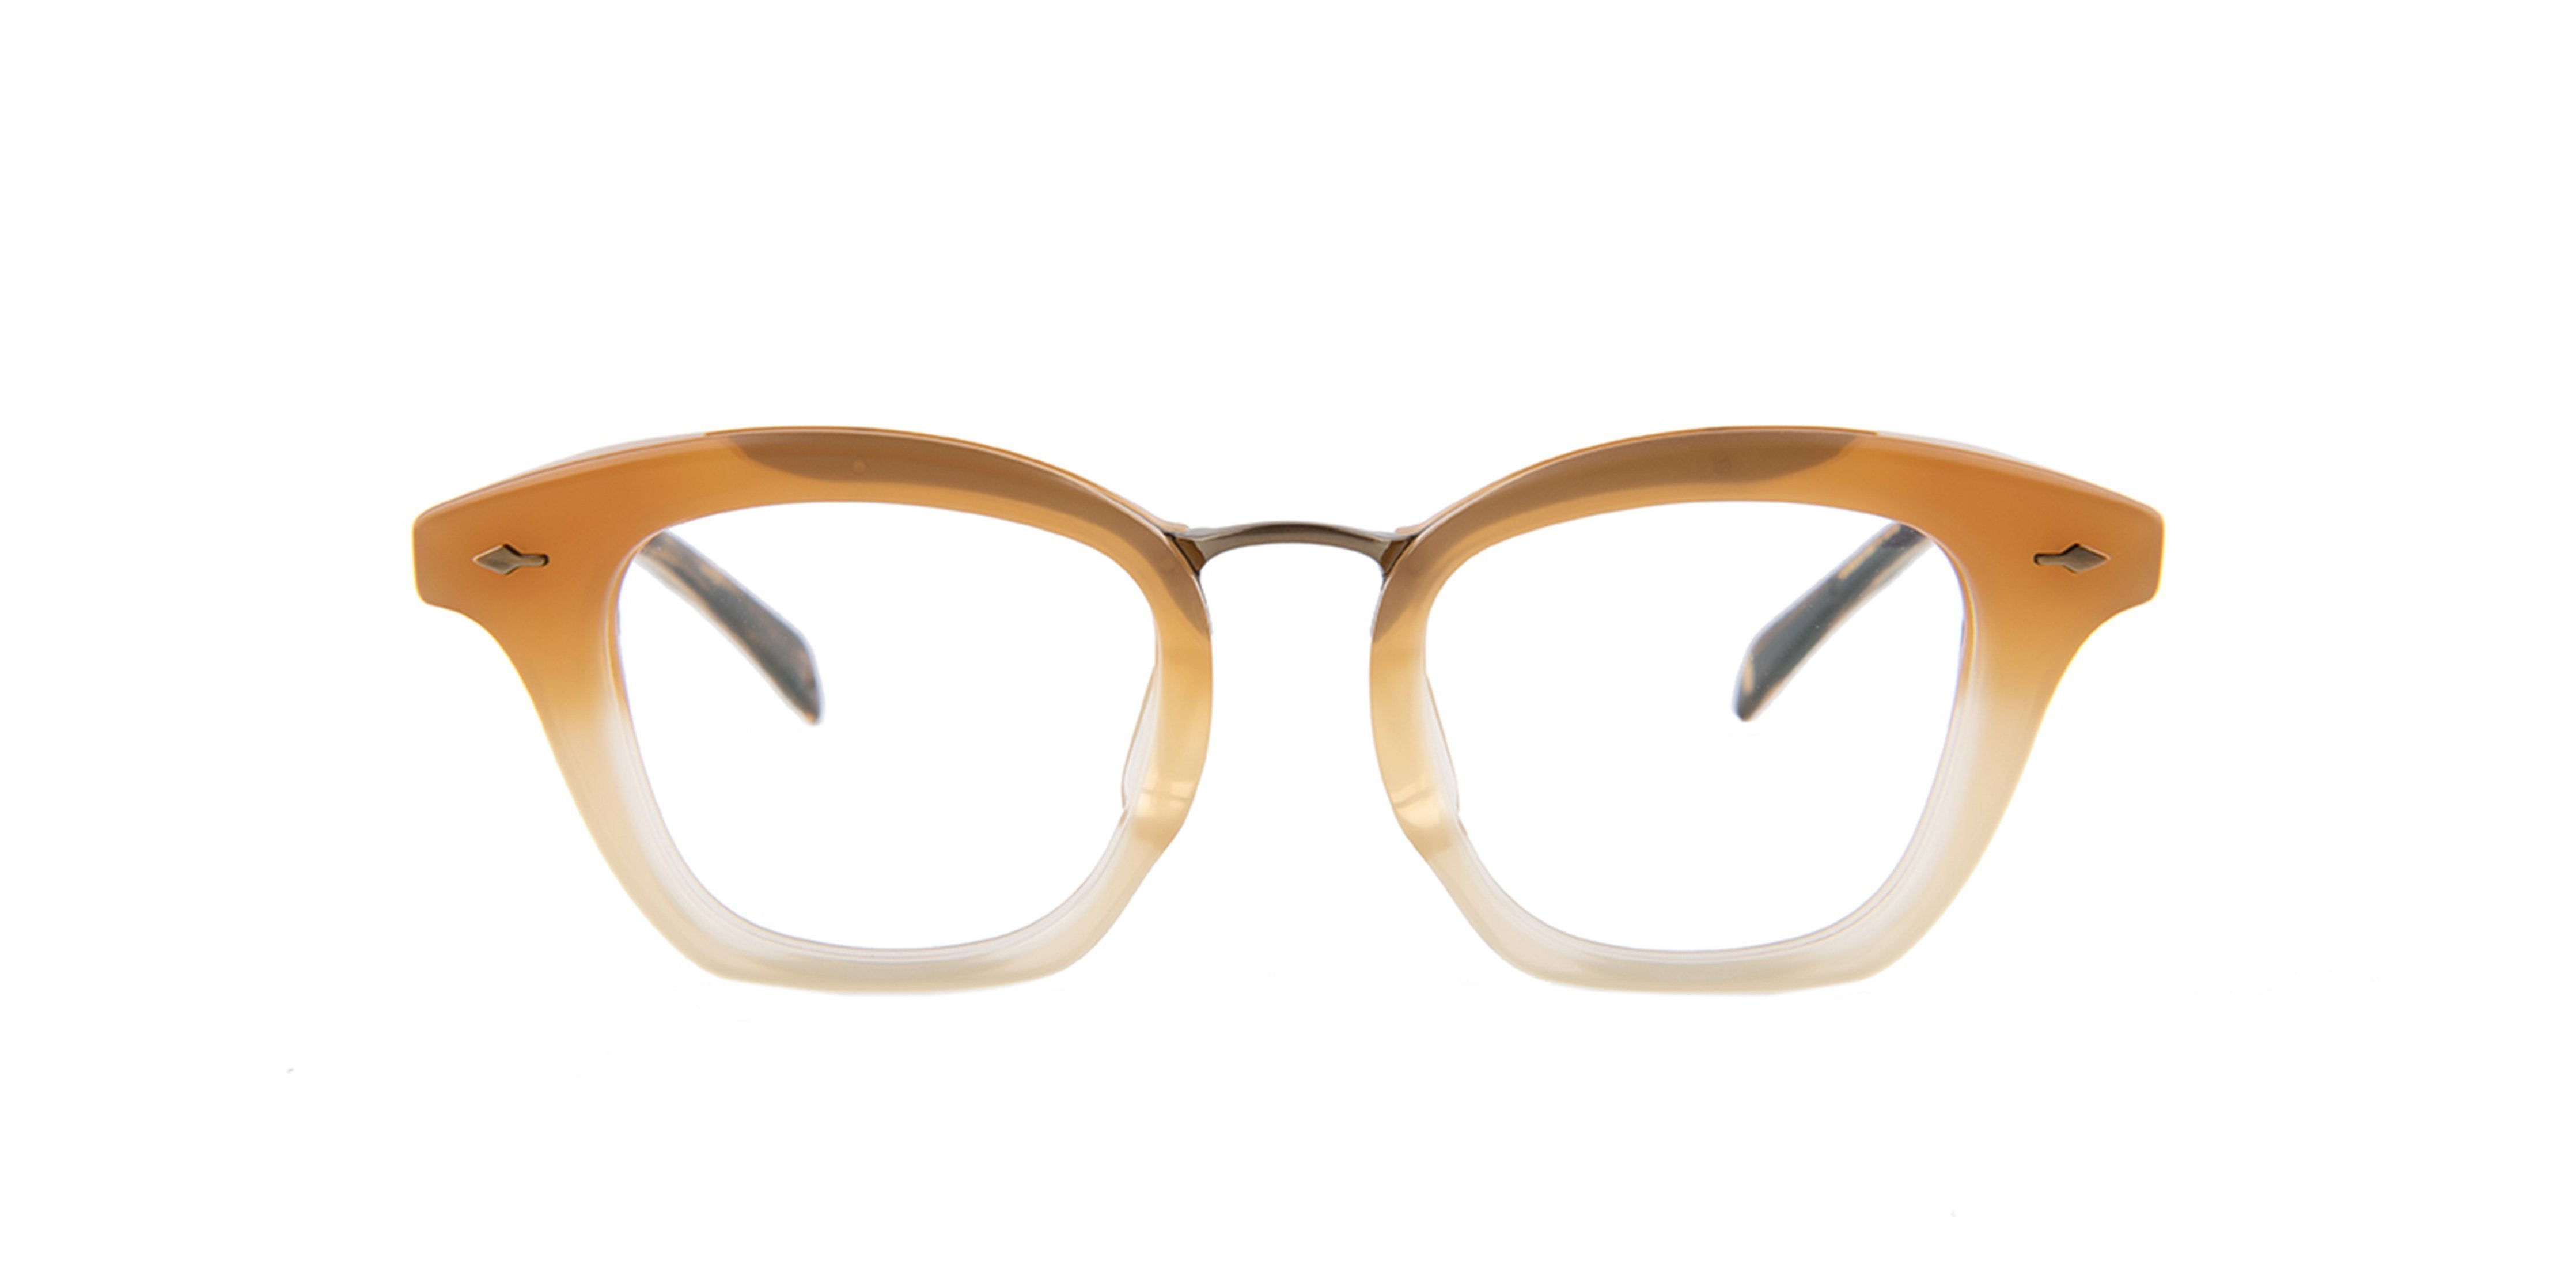 Jacques Marie Mage - Marisol Brown/Clear Square Women Eyeglasses - 46mm-Eyeglasses-Designer Eyes